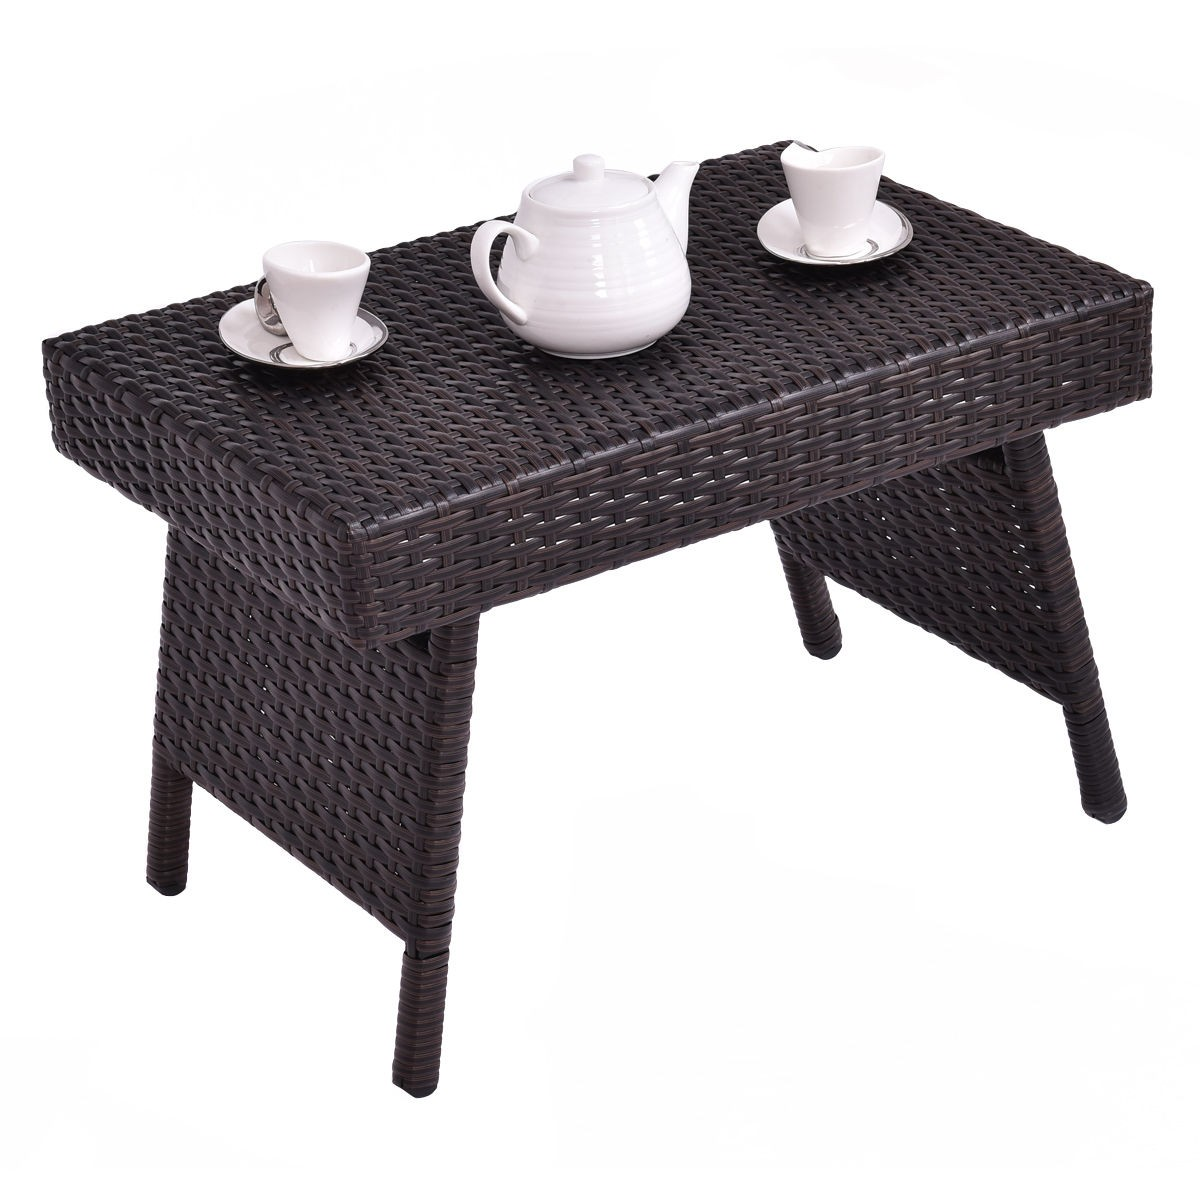 Vintage Mix Brown Patio Folding Rattan Side Coffee Table